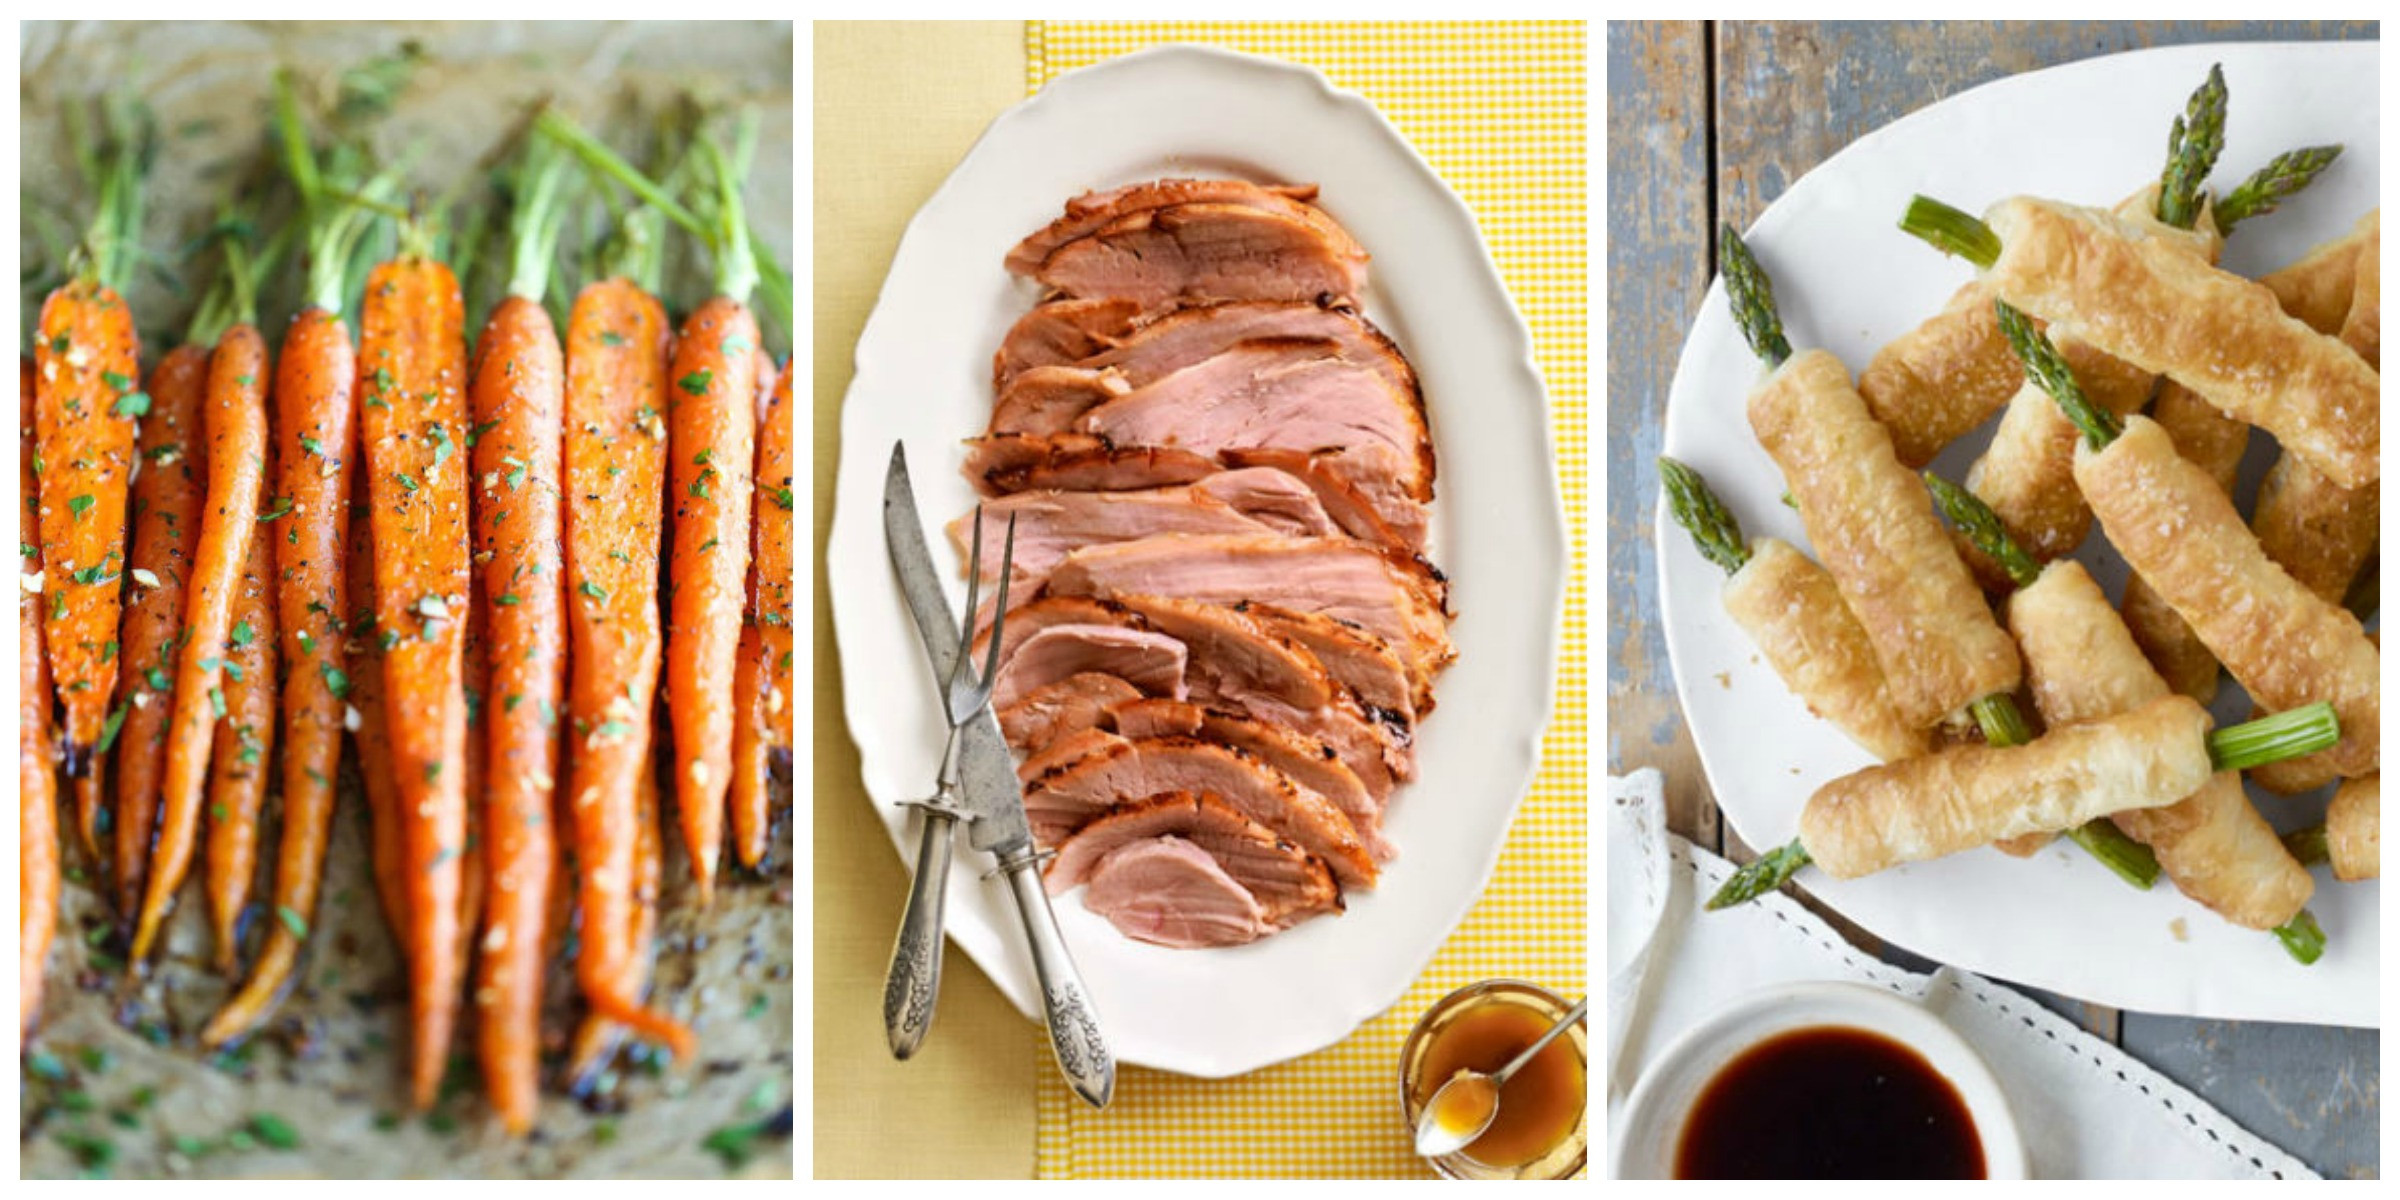 Easter Dinner For Two Ideas  70 Easter Dinner Recipes & Food Ideas Easter Menu